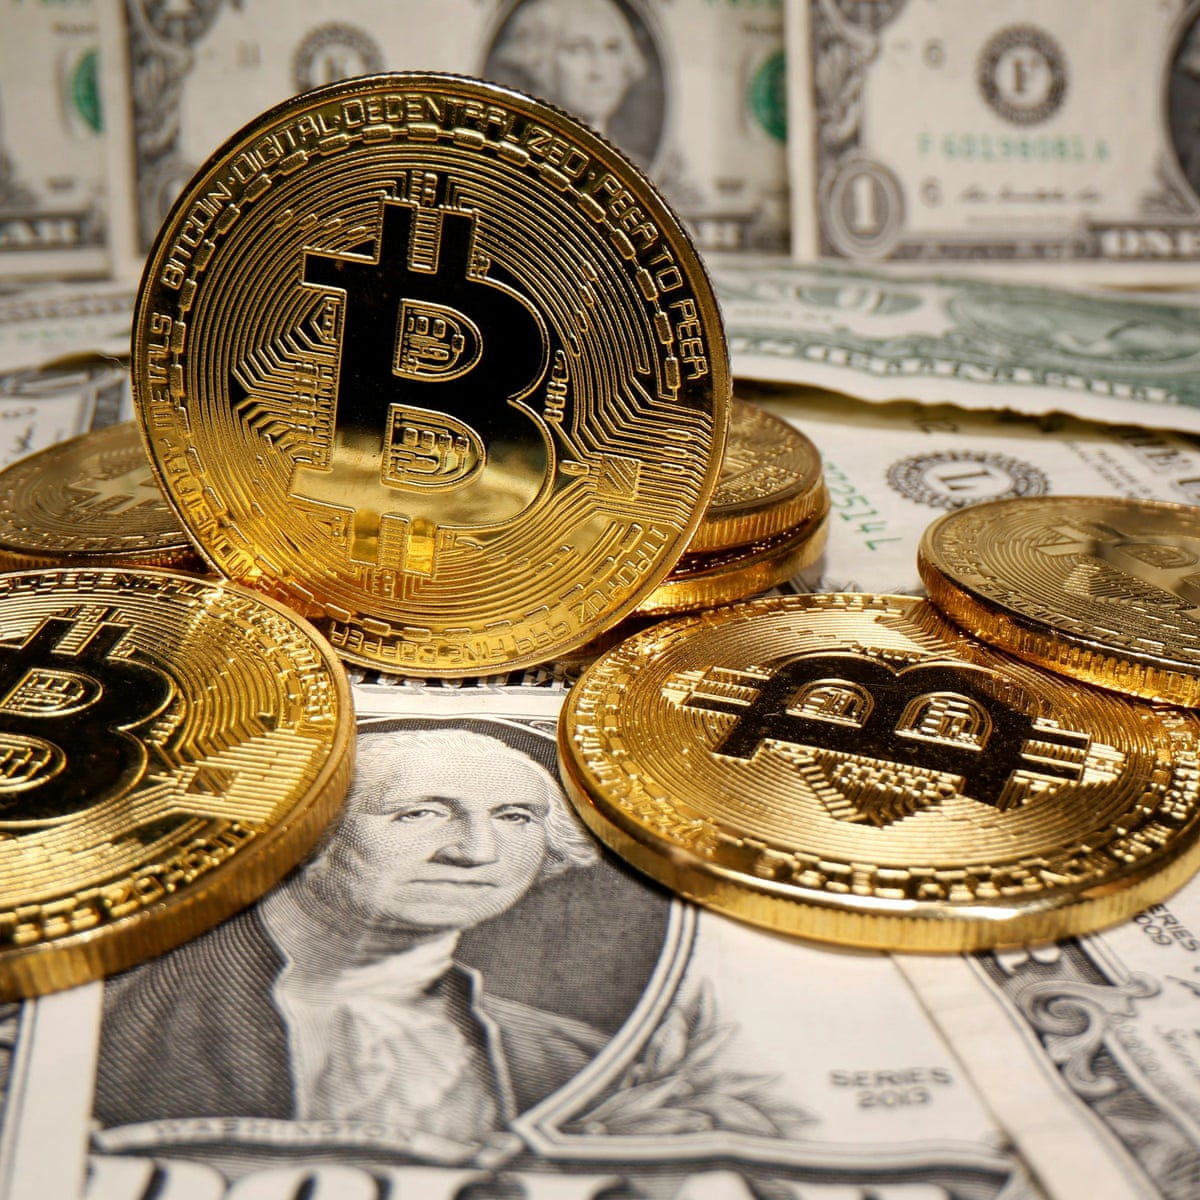 Bitcoin surges to record $28,500, quadrupling in value this year | Bitcoin  | The Guardian